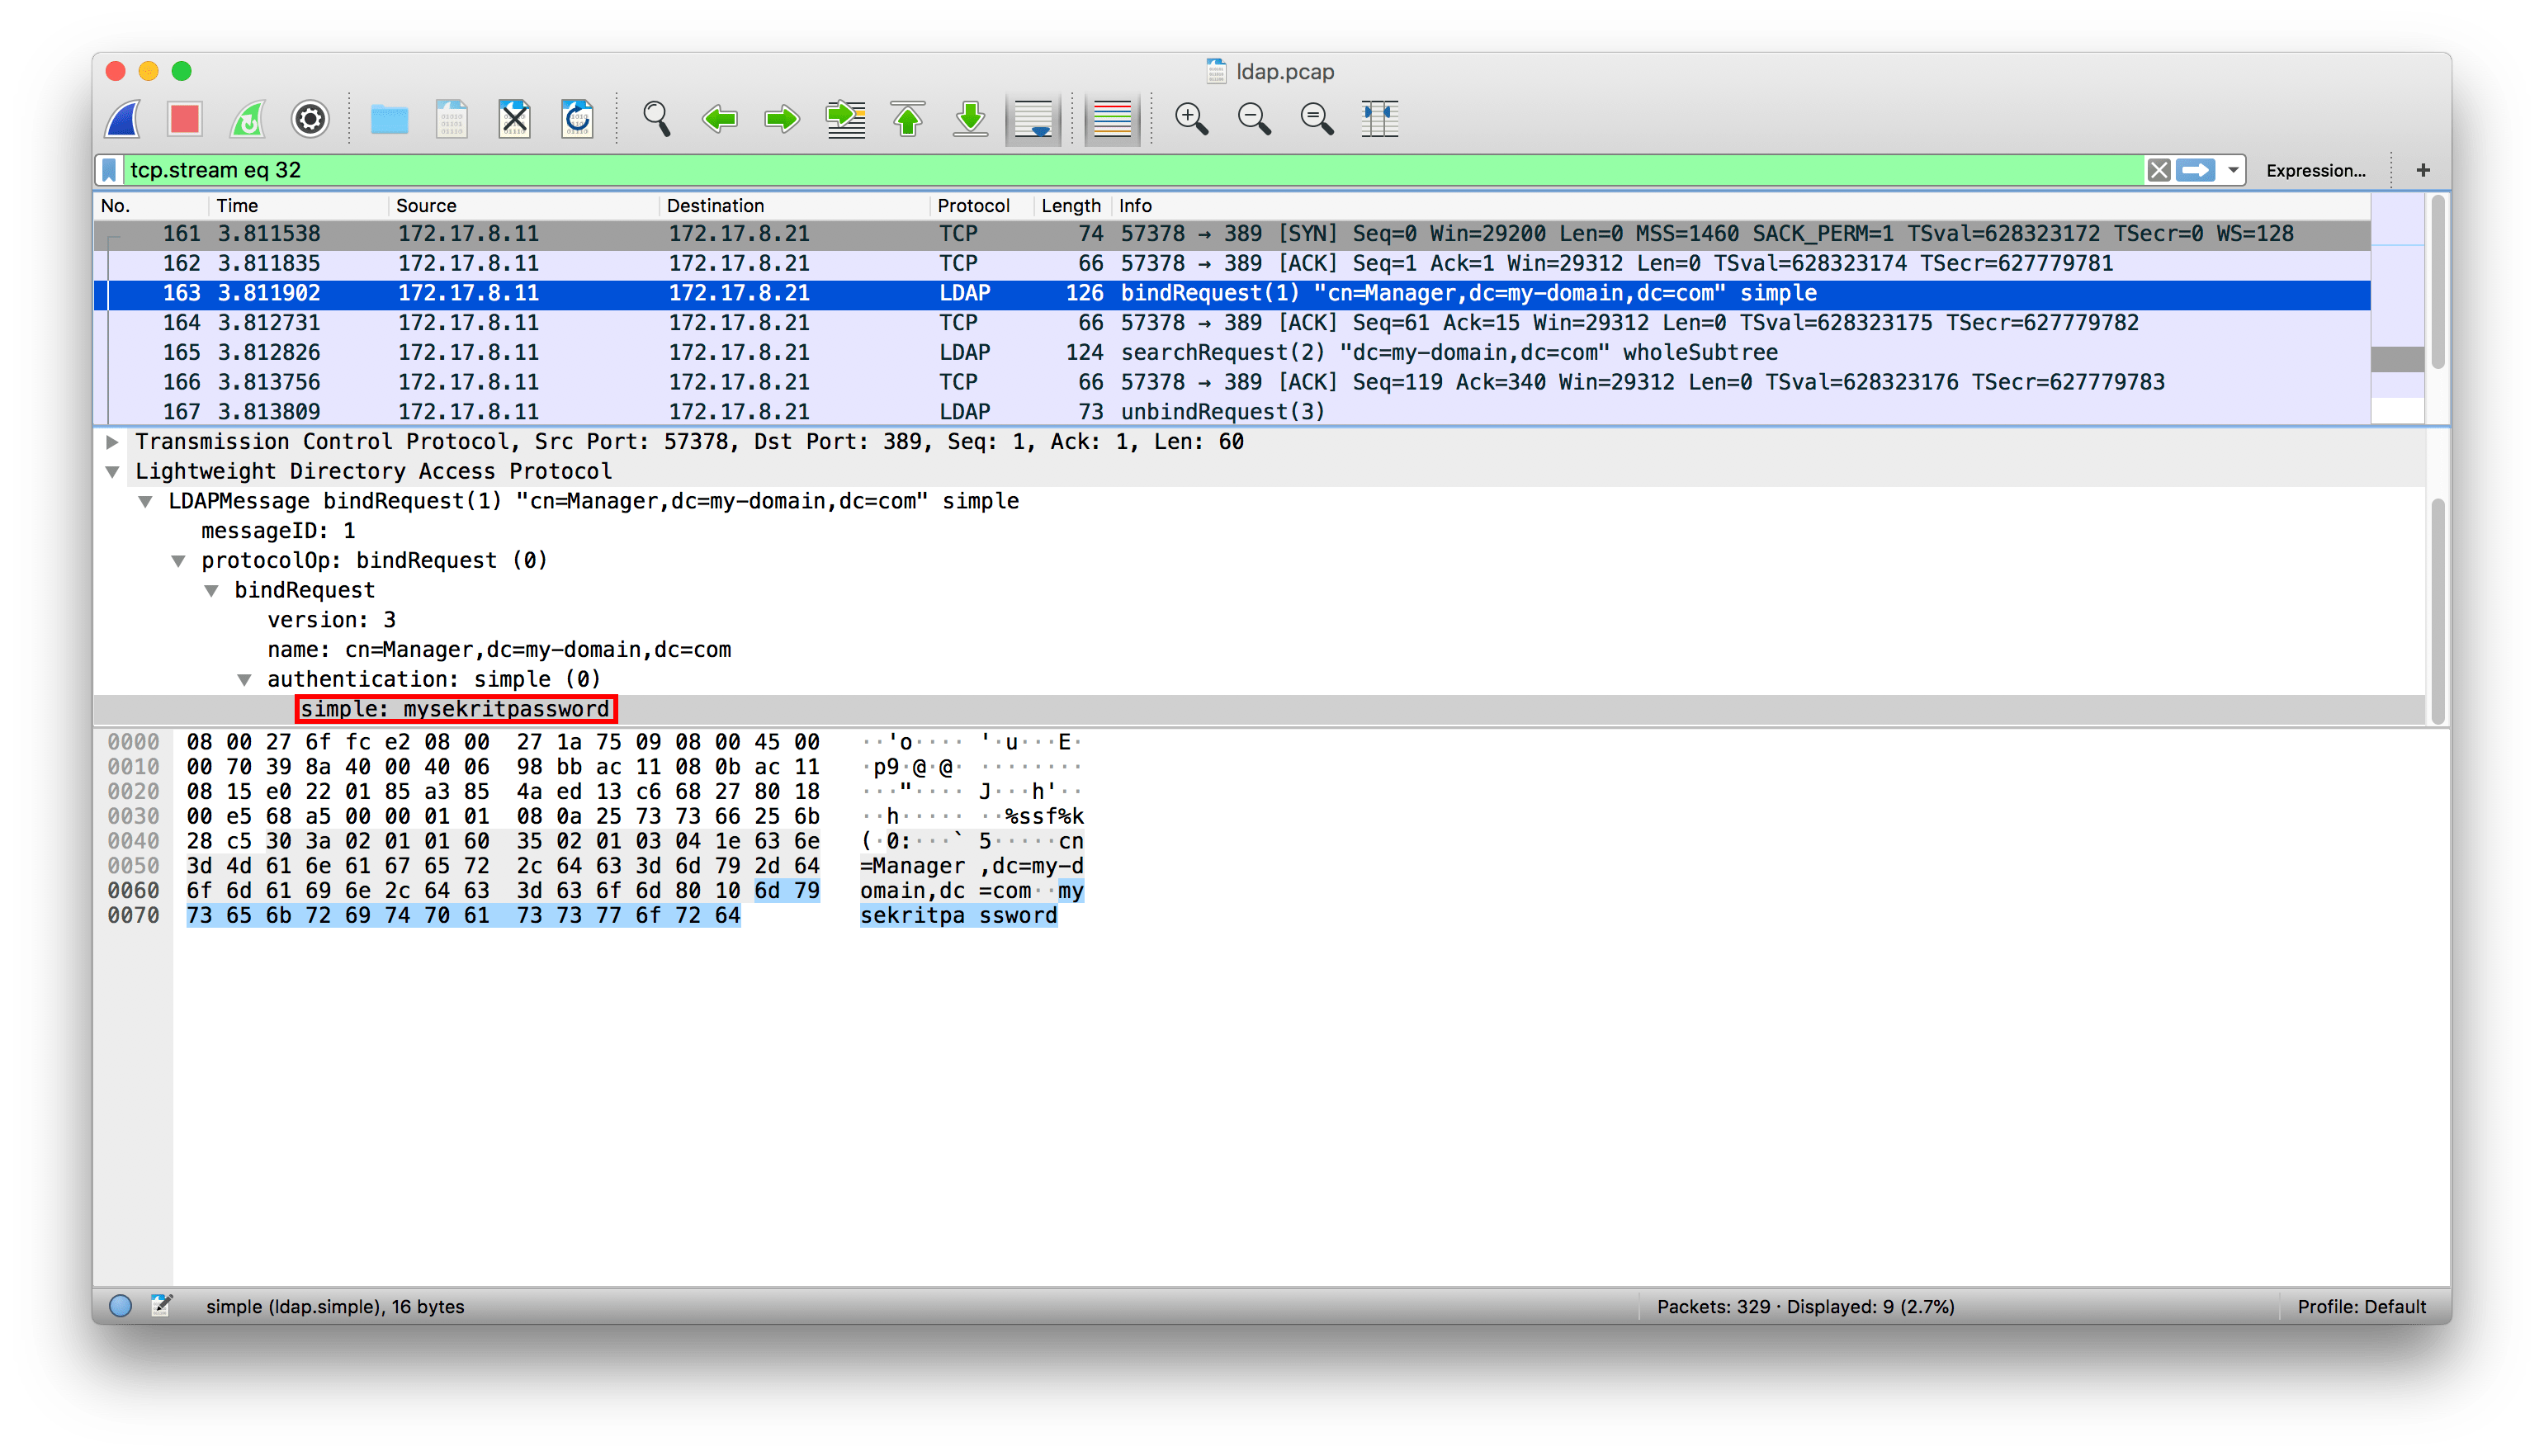 Results from using Wireshark to capture server-to-server transmissions, with the LDAP credentials in cleartext.